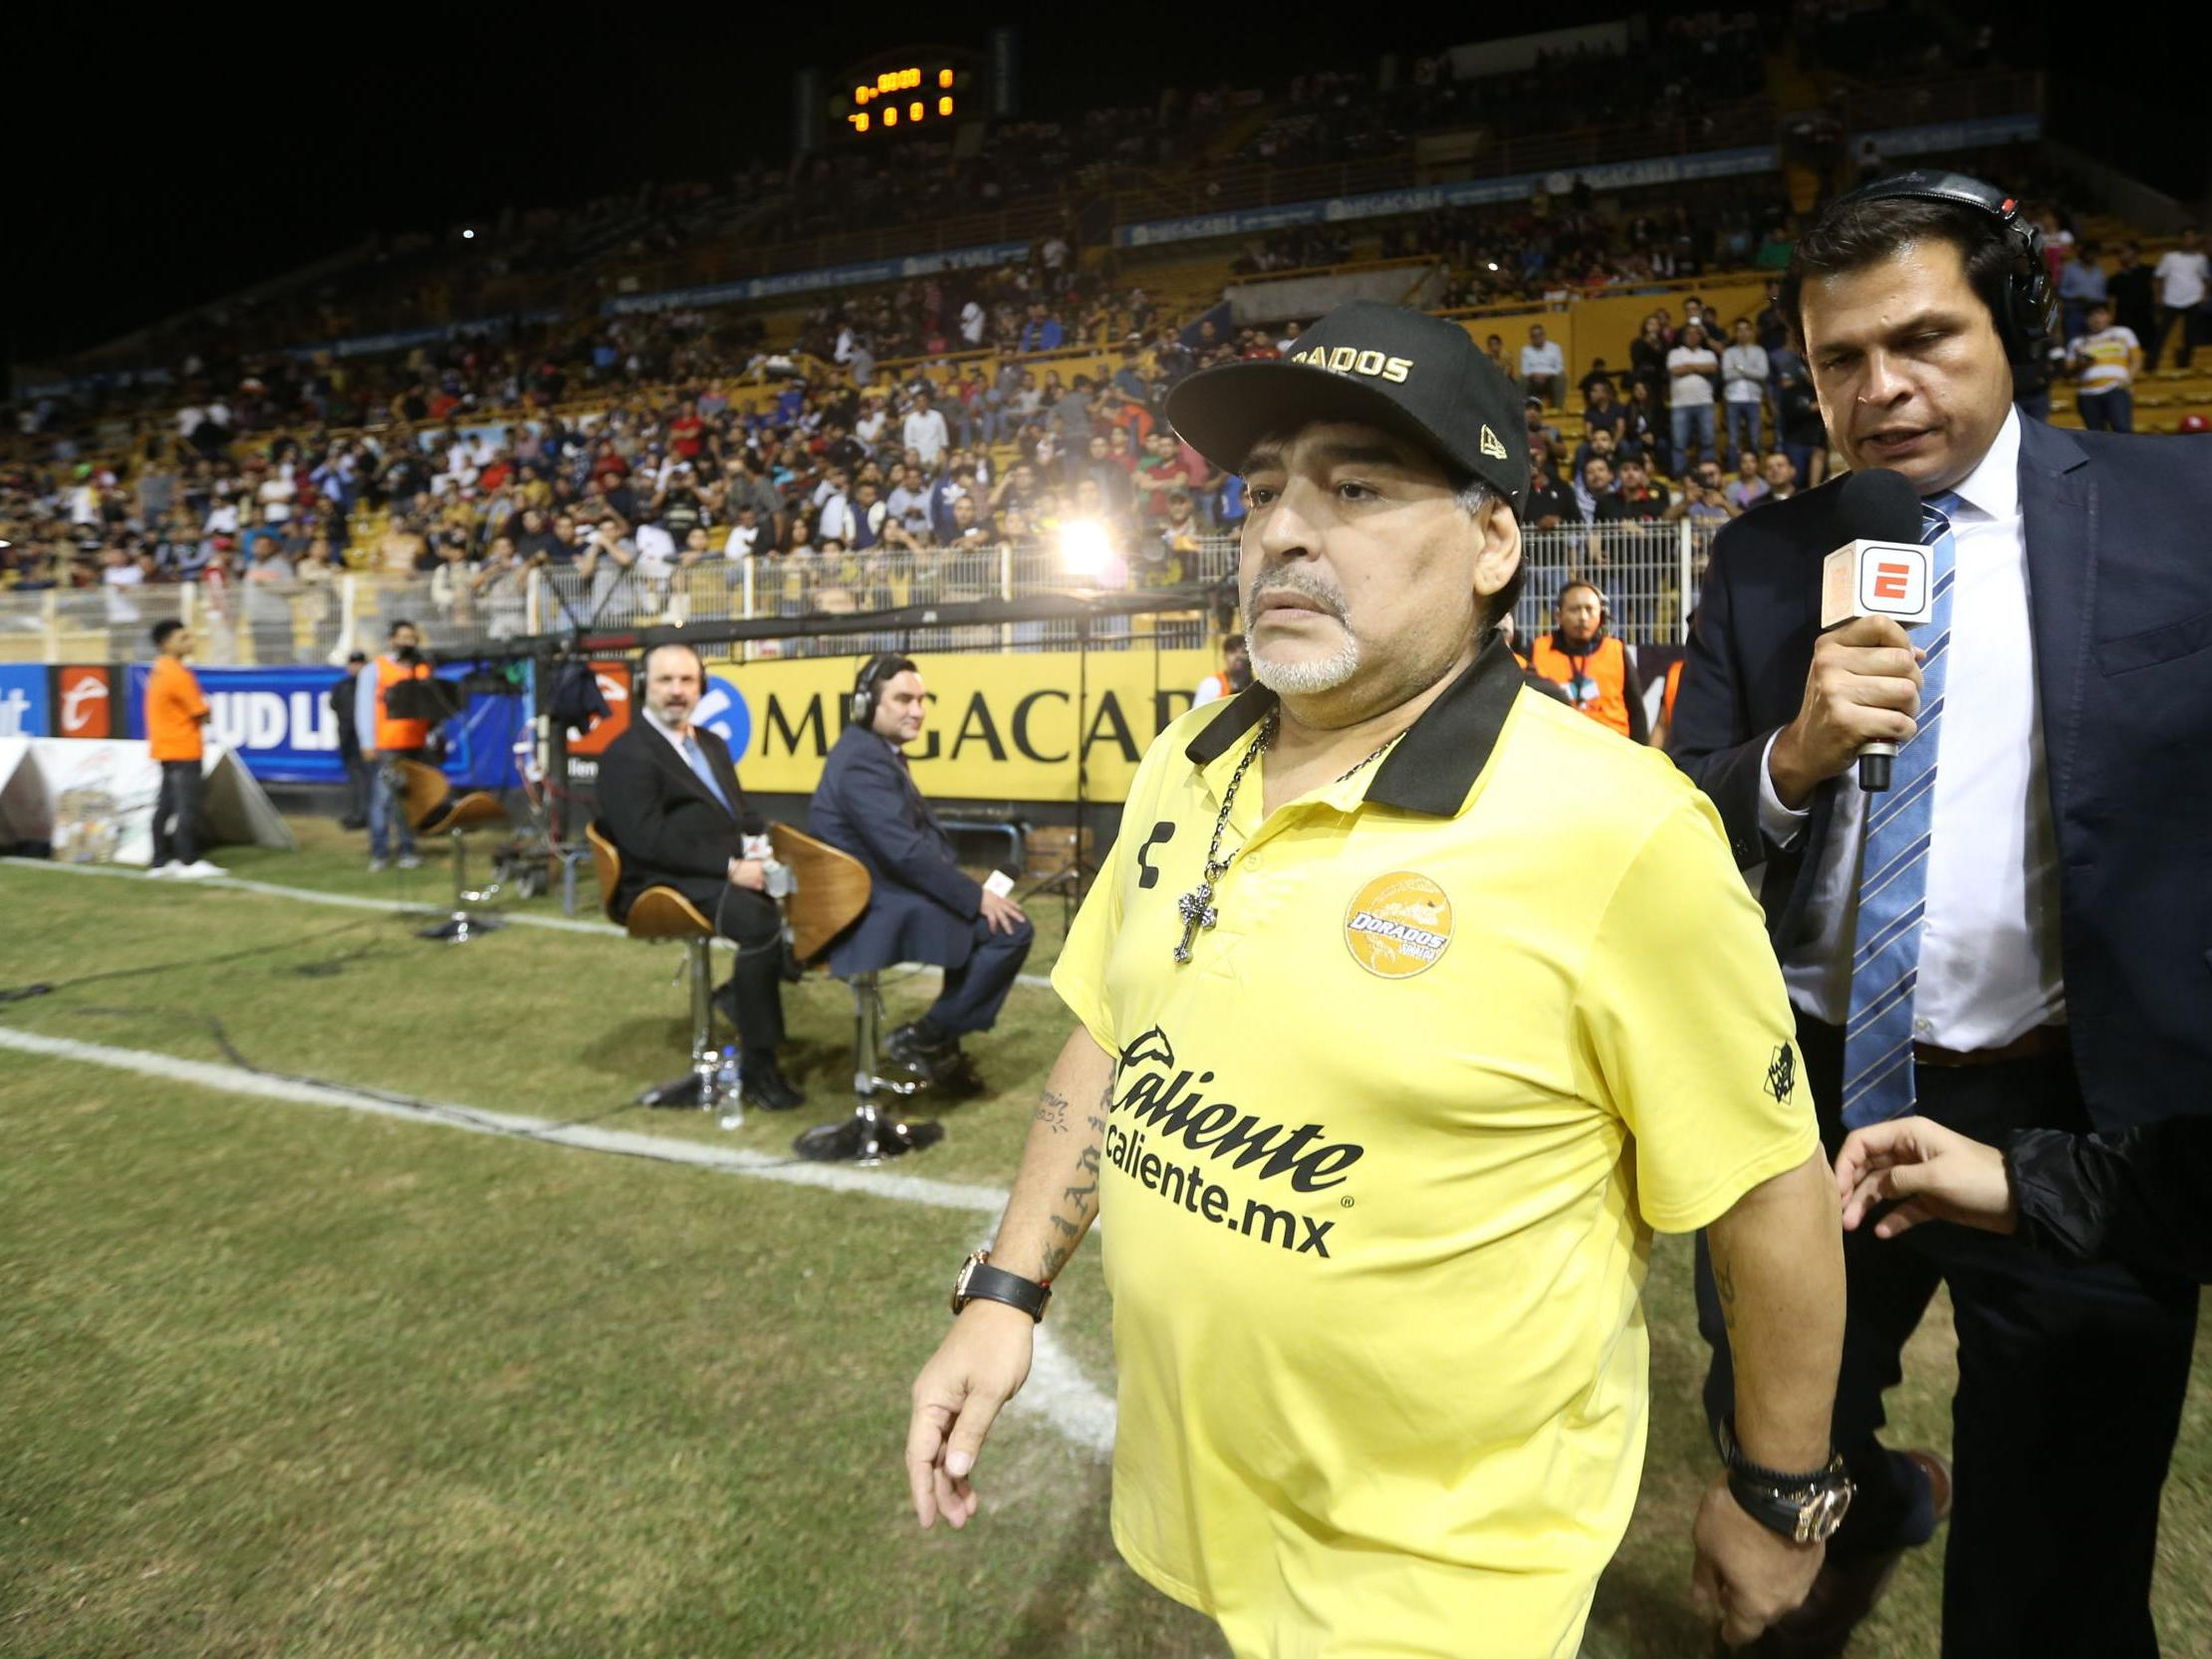 Diego Maradona Recovering In Hospital After Surgery The Independent The Independent